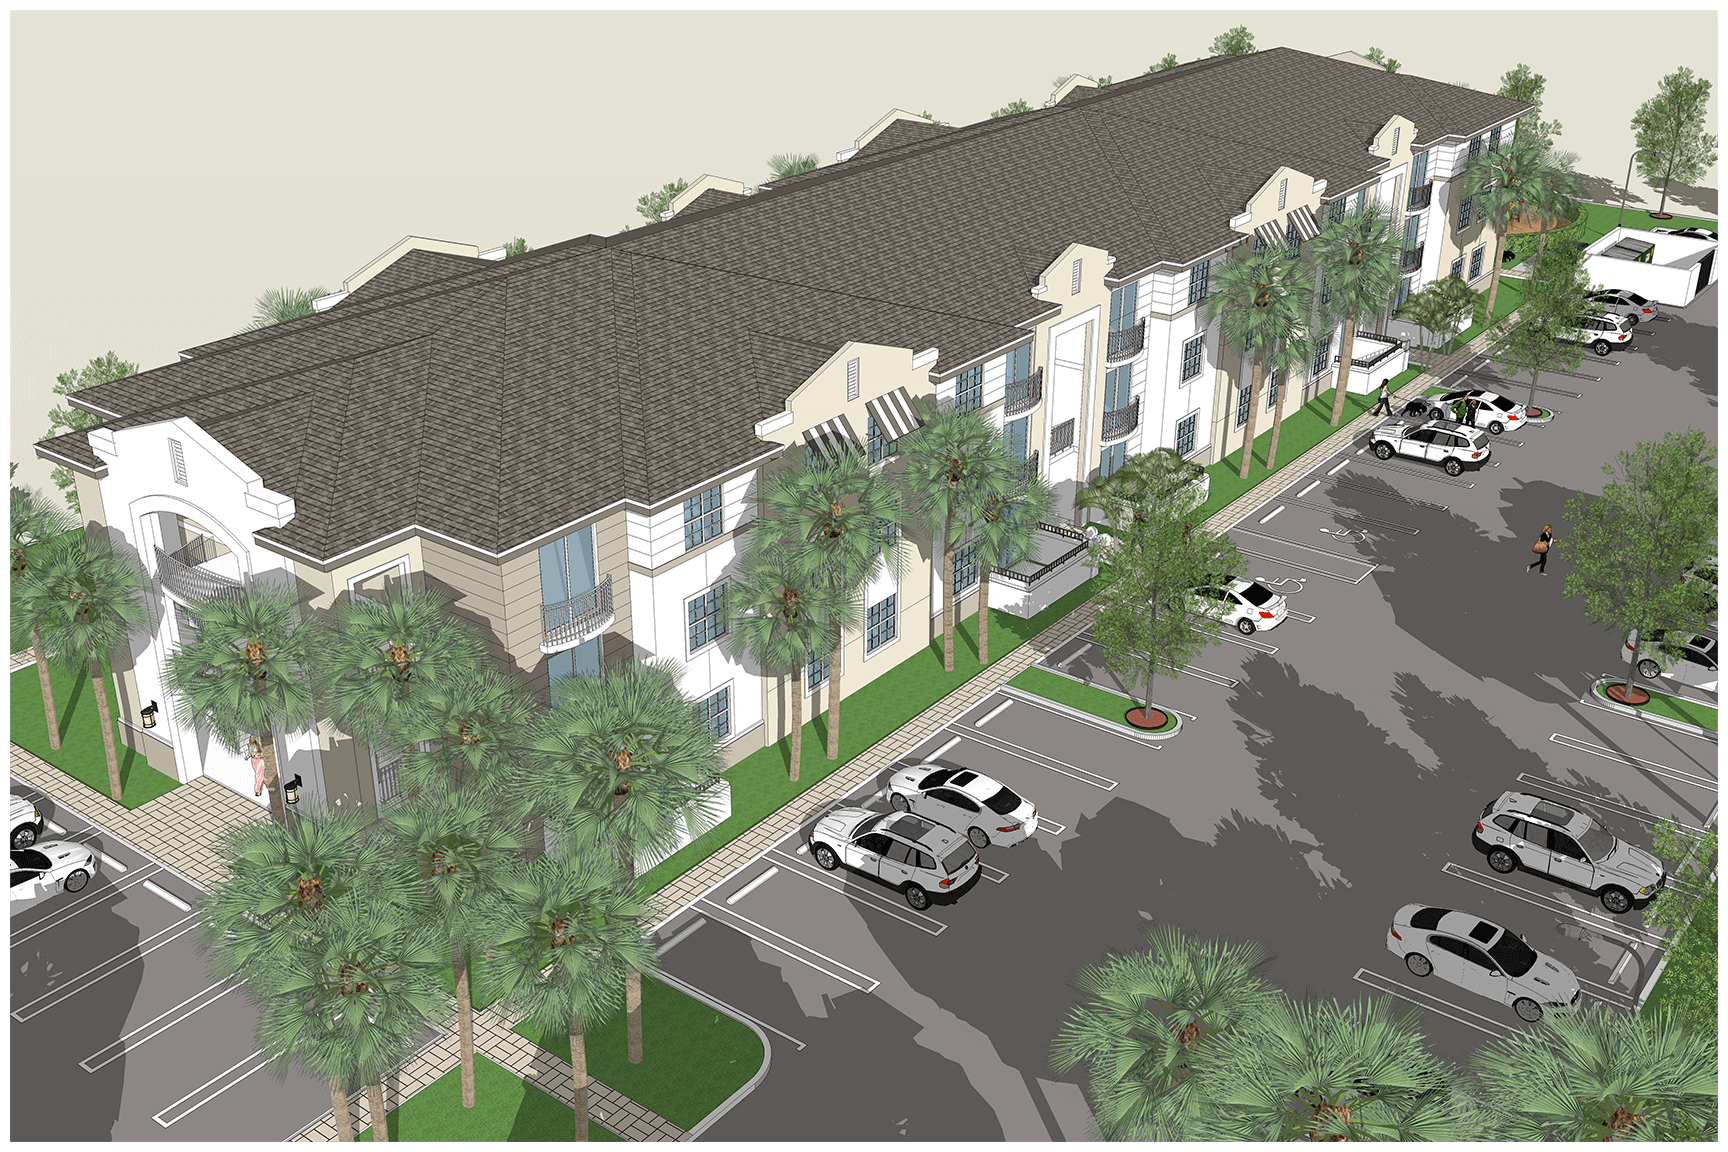 North lauderdale residential modis architects for Architecture firms fort lauderdale